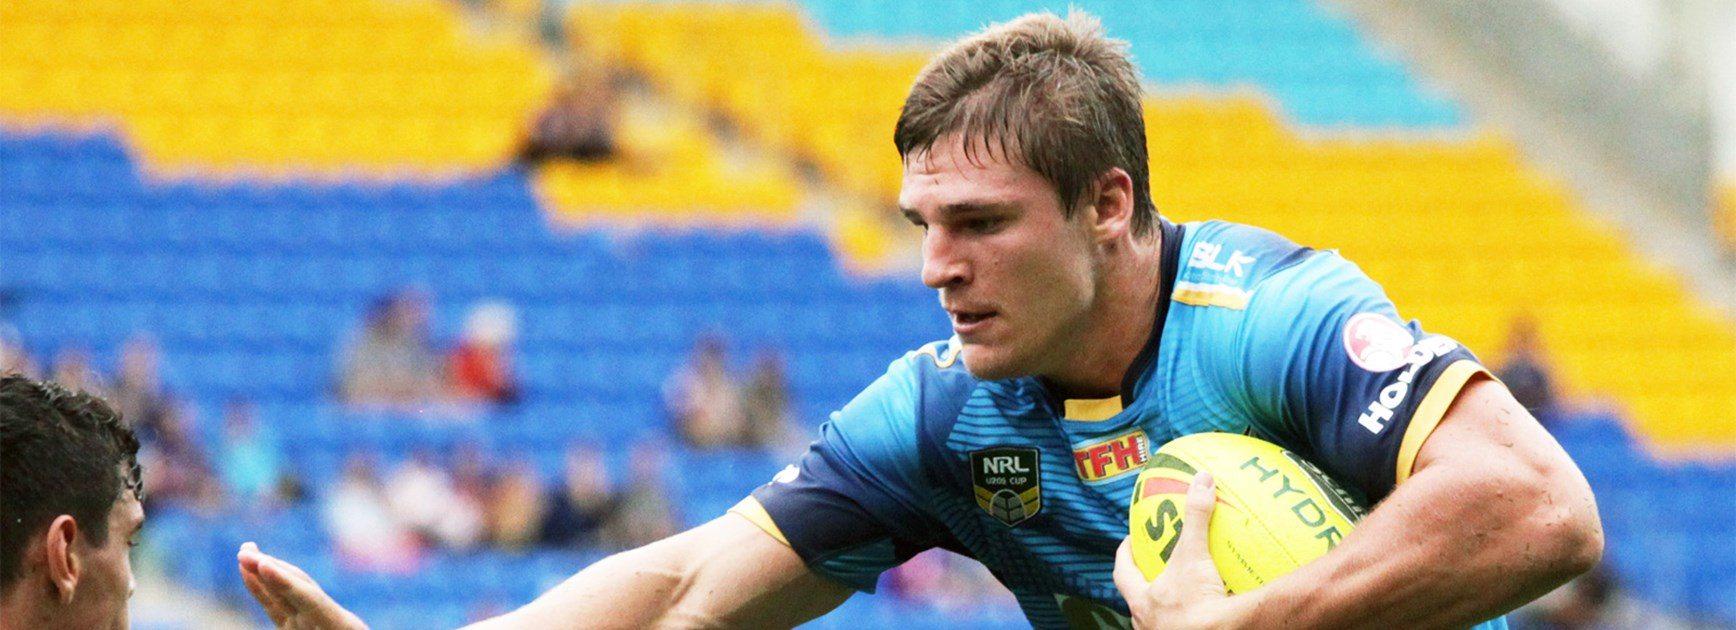 Panthers recruit Jed Cartwright during his time with the Titans' NYC team.